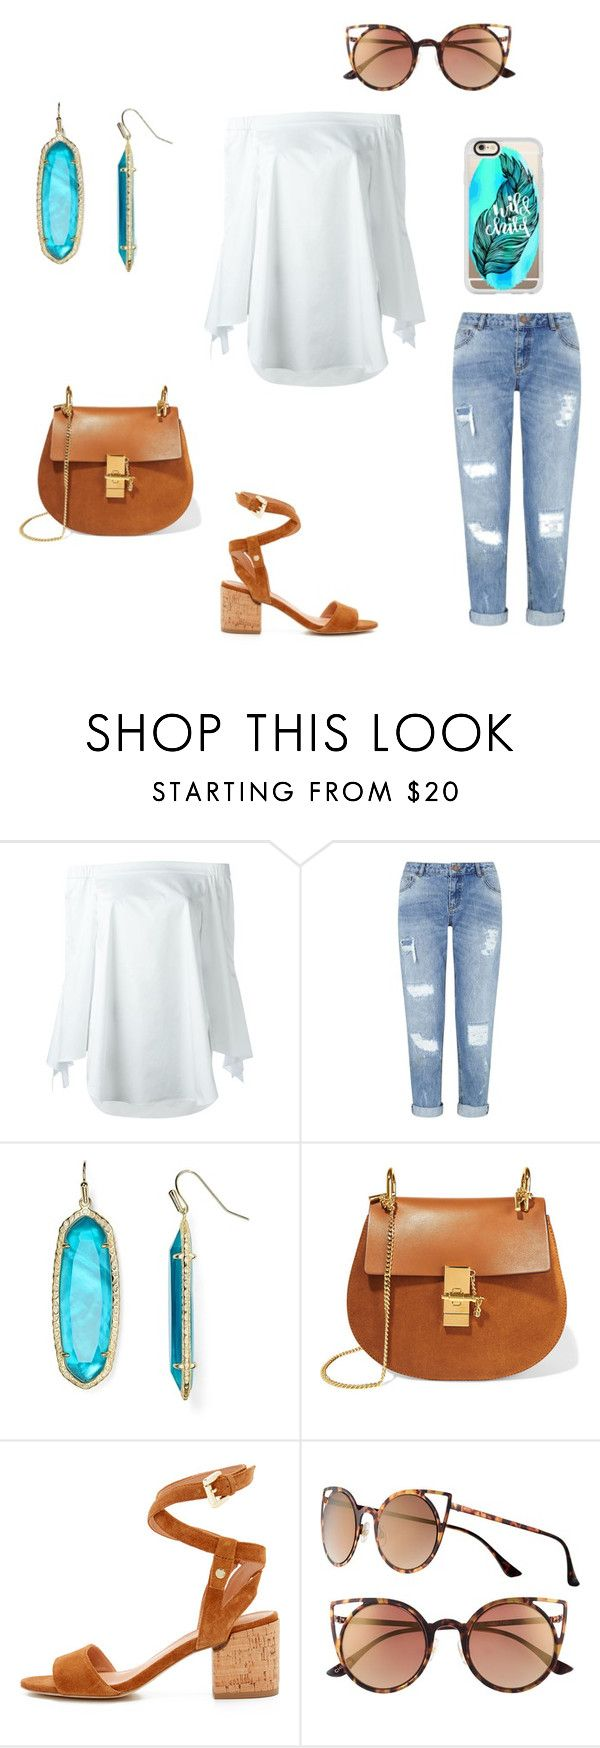 """""""Wild Child"""" by fashionablylateky ❤ liked on Polyvore featuring TIBI, Miss Selfridge, Kendra Scott, Chloé, Sigerson Morrison, SO and Casetify"""